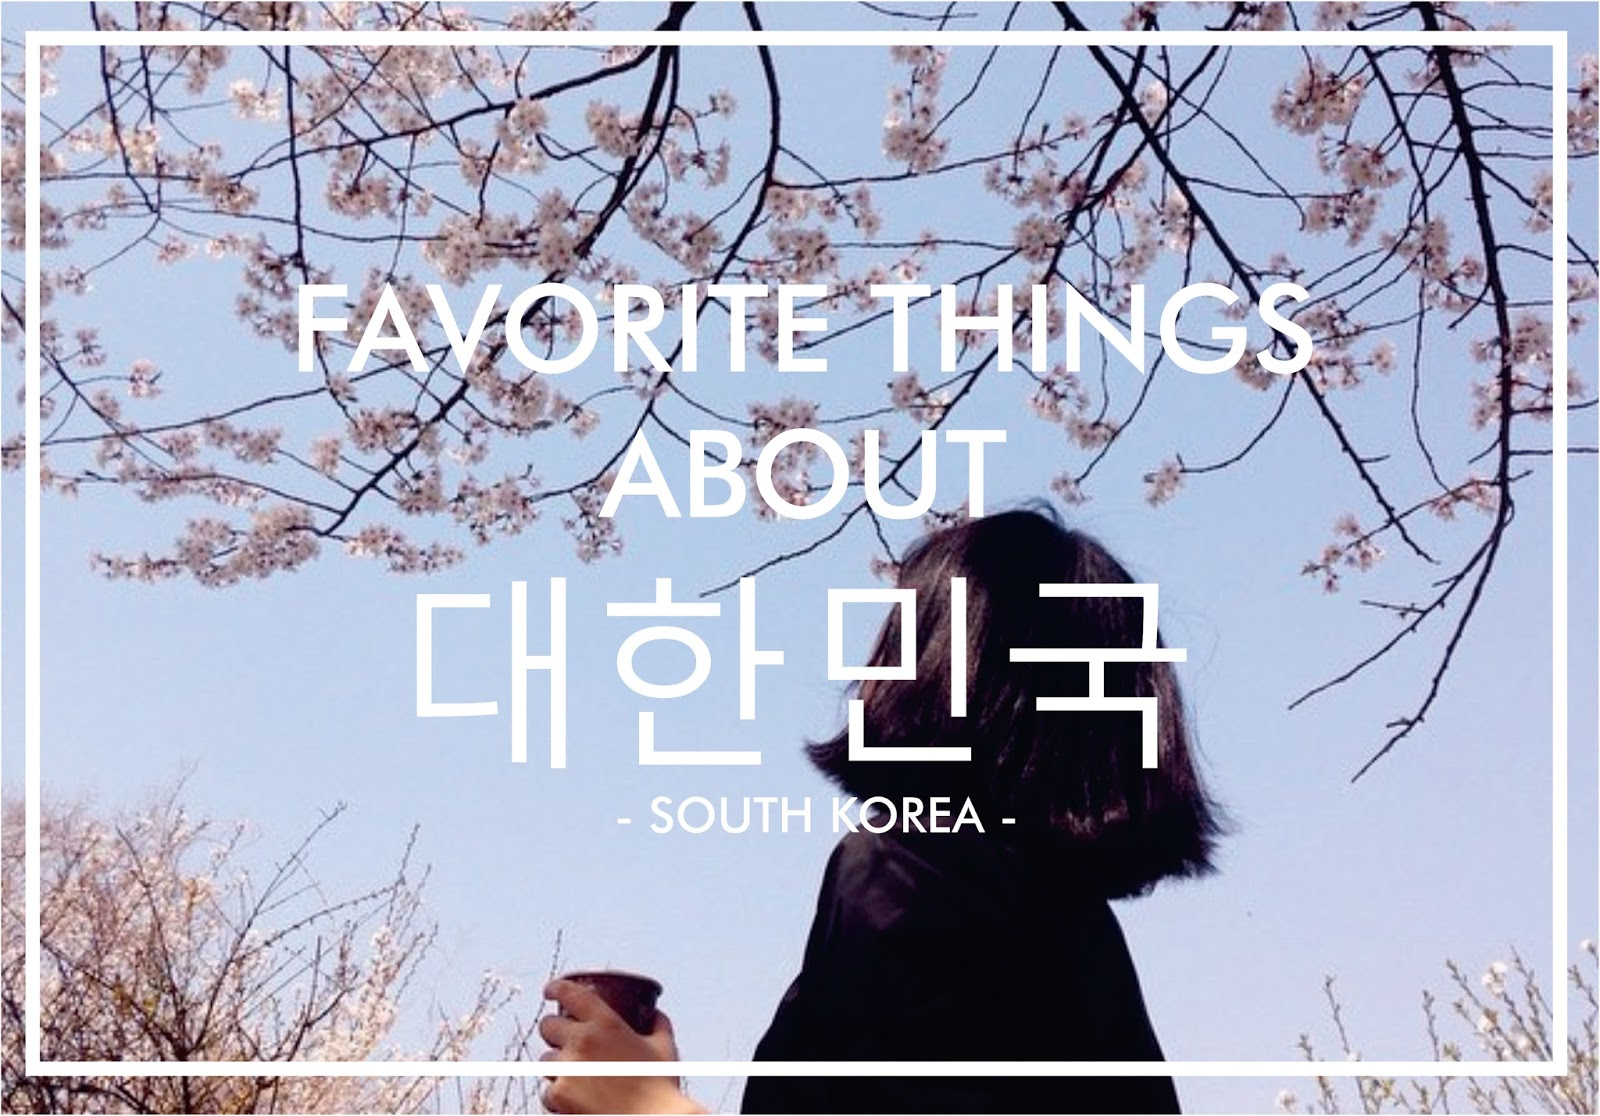 About South Korea My Favorite Things About South Korea Mind Blowing